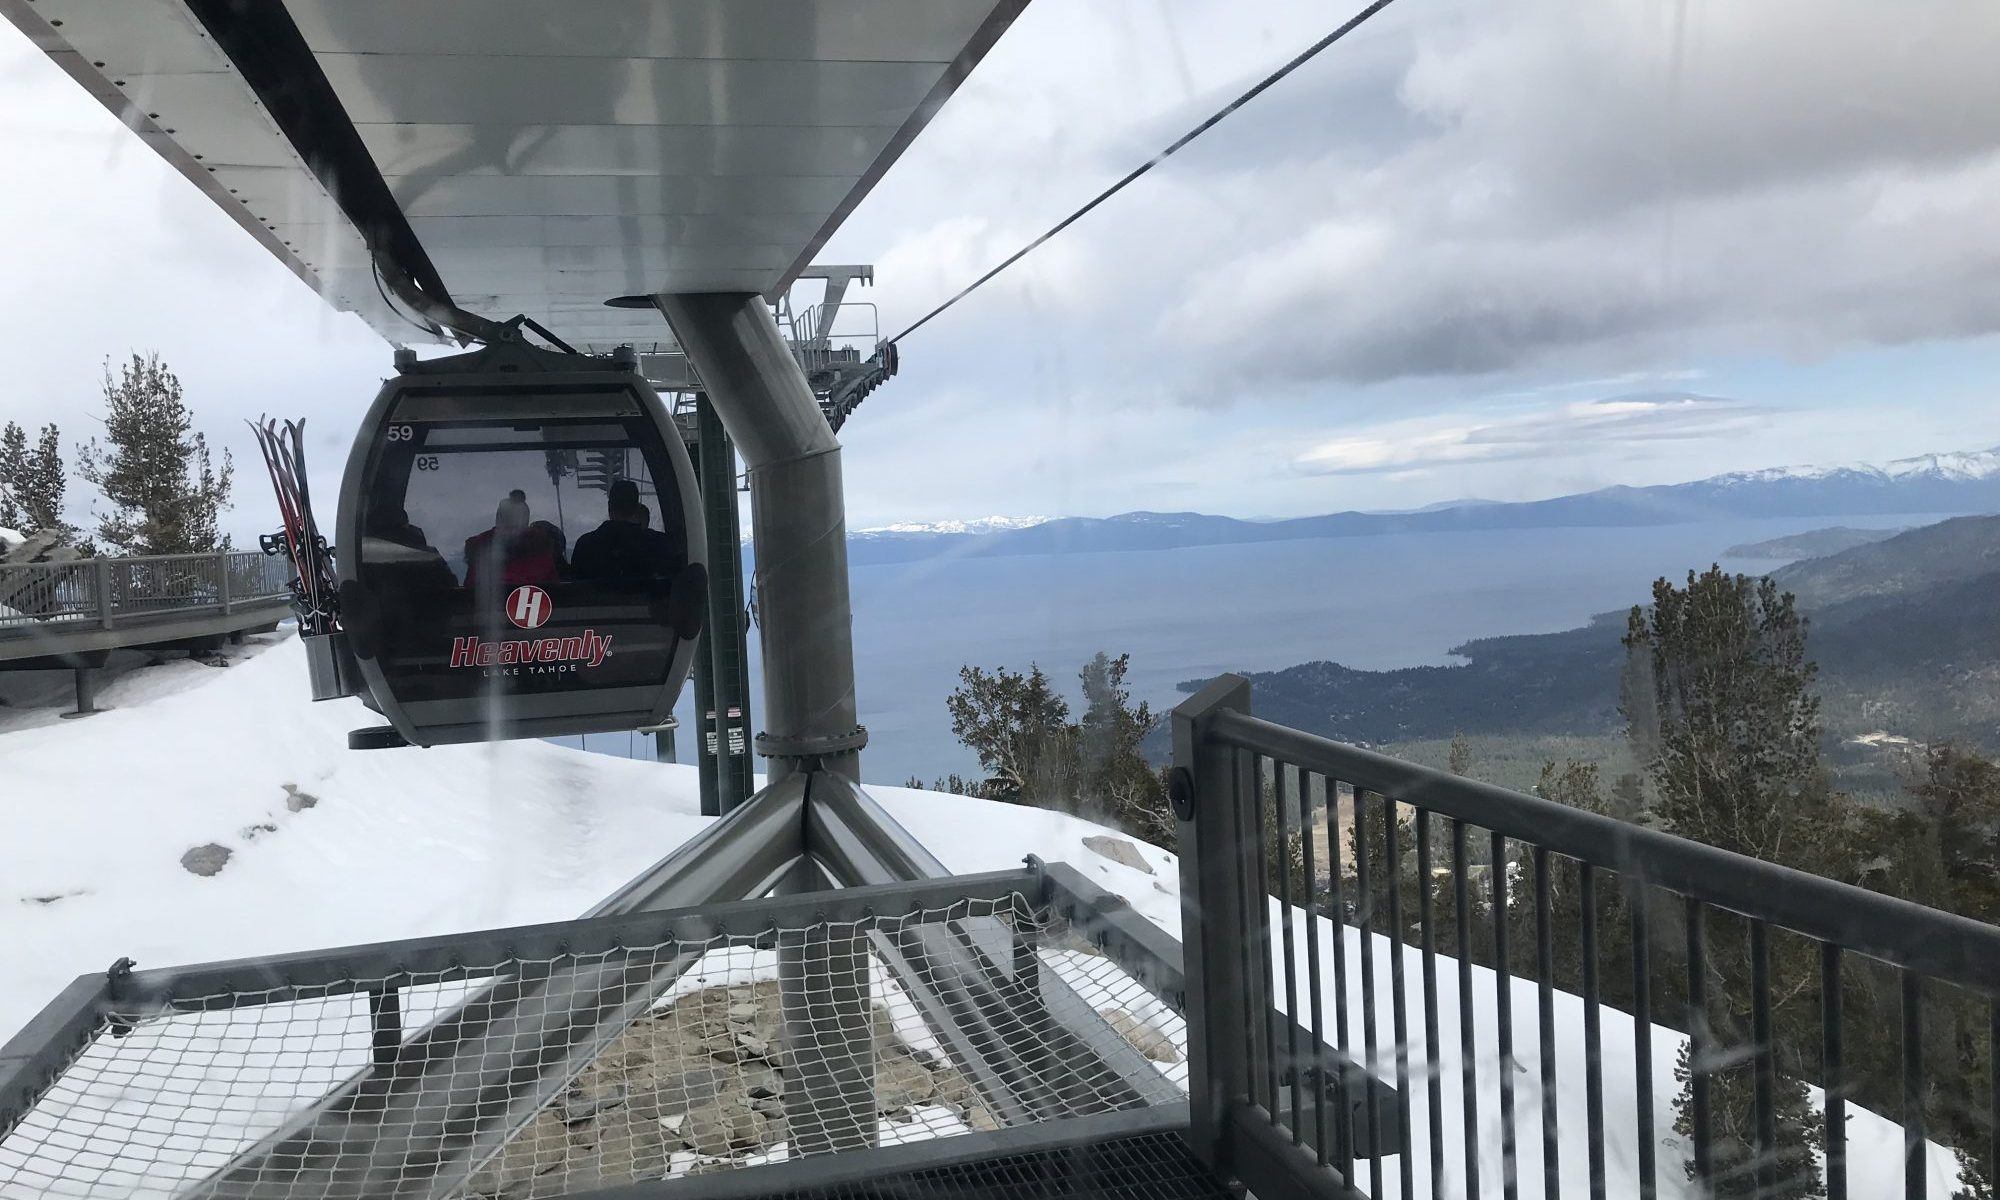 Heavenly gondola. Photo by: The-Ski-Guru. Heavenly is another of the resorts that will roll out Emma later this season. Emma, the World's First Digital Mountain Assistant, Kicks Off the 2018-19 Winter Season in Beta at Keystone Ski Resort.